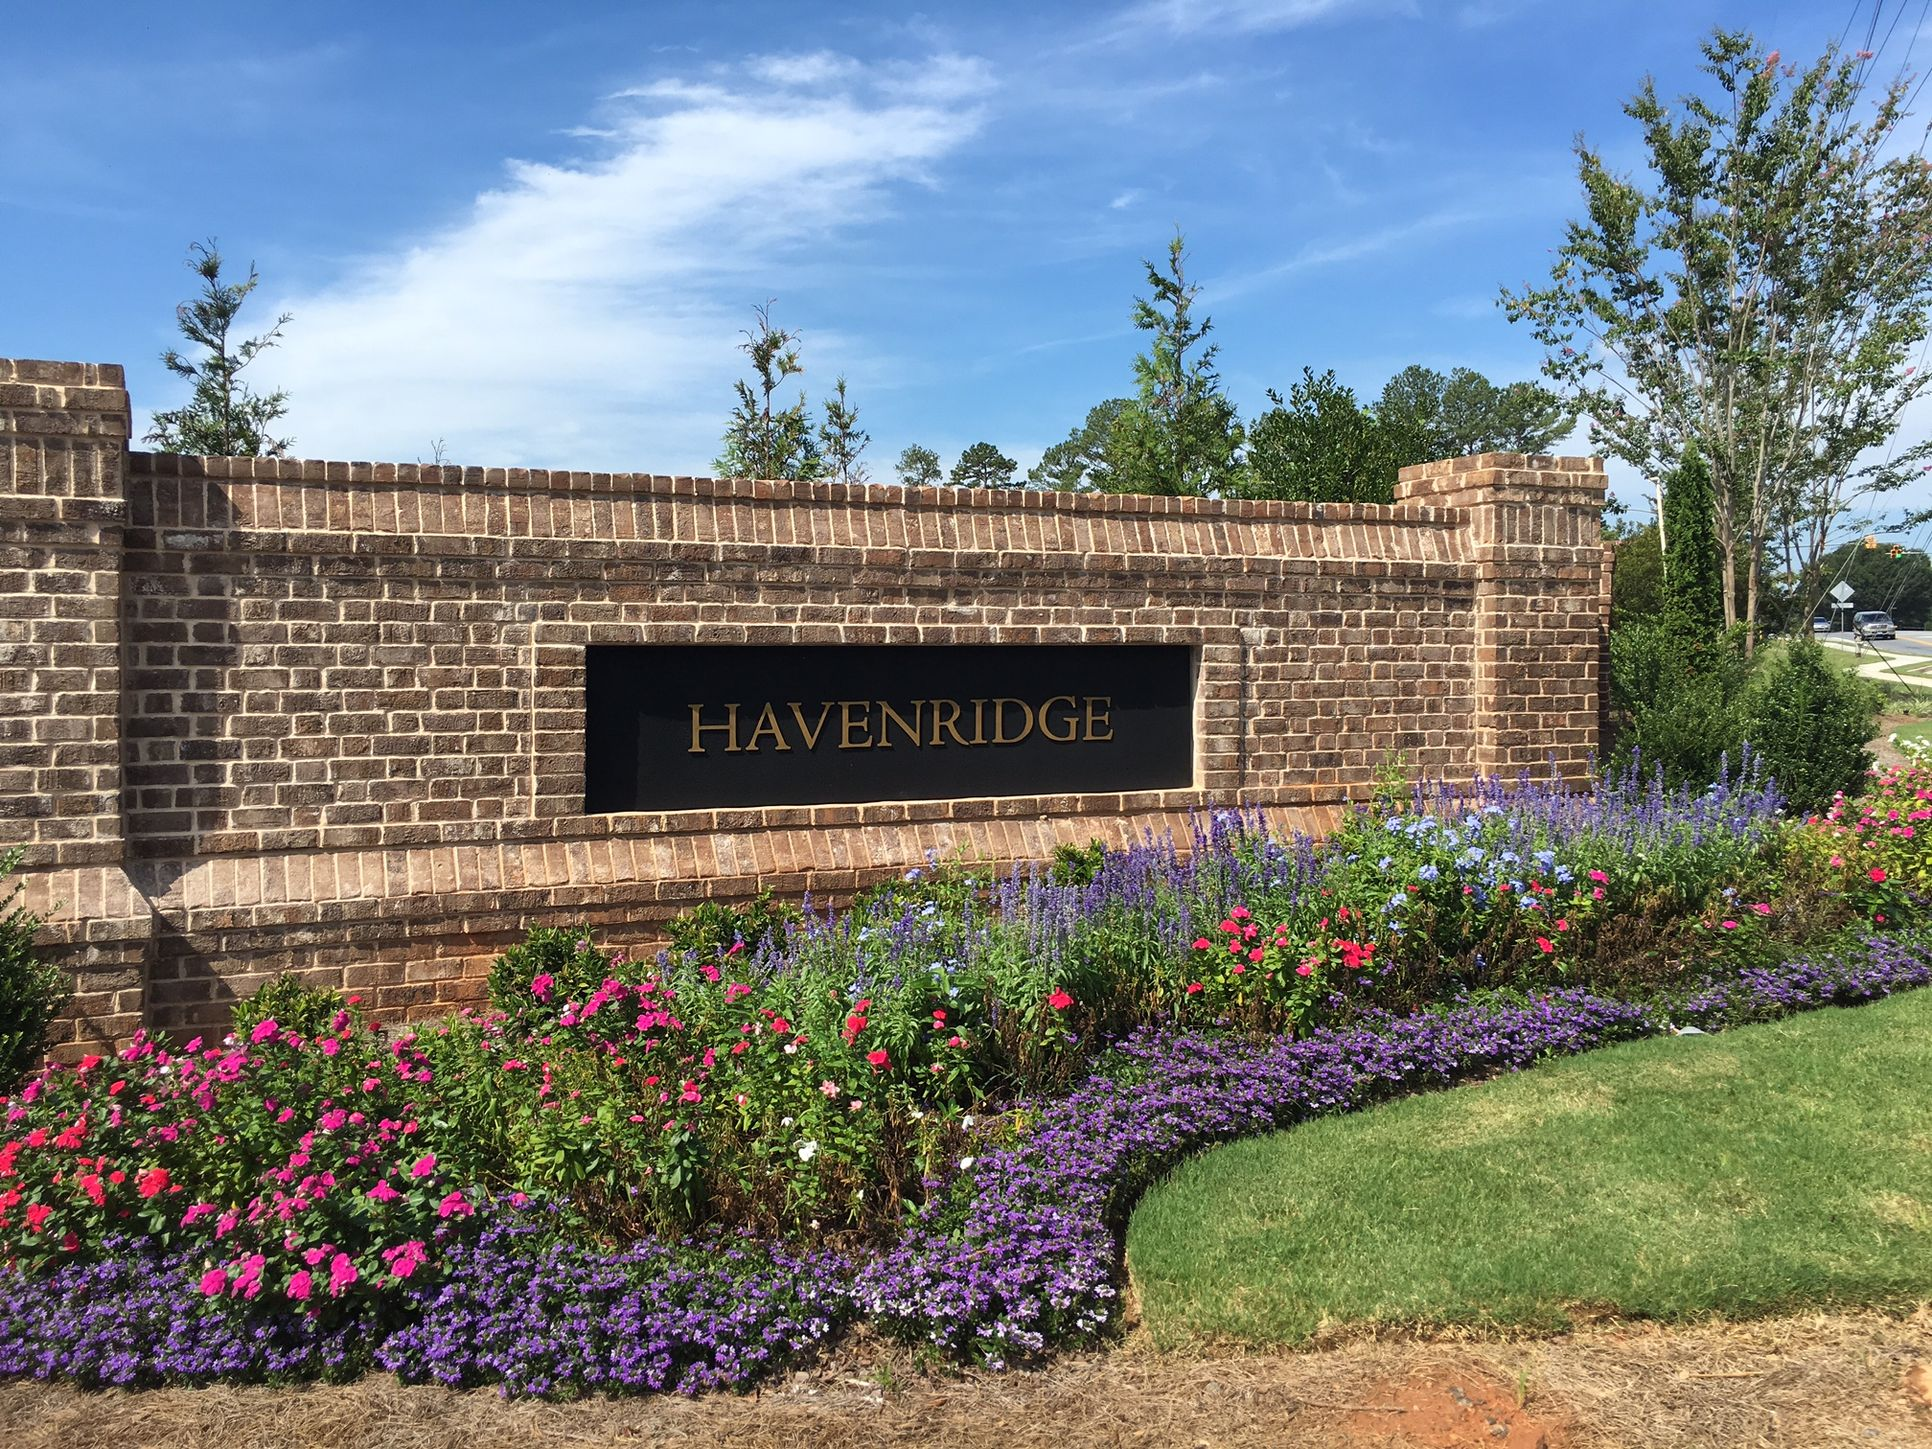 Havenridge,30075